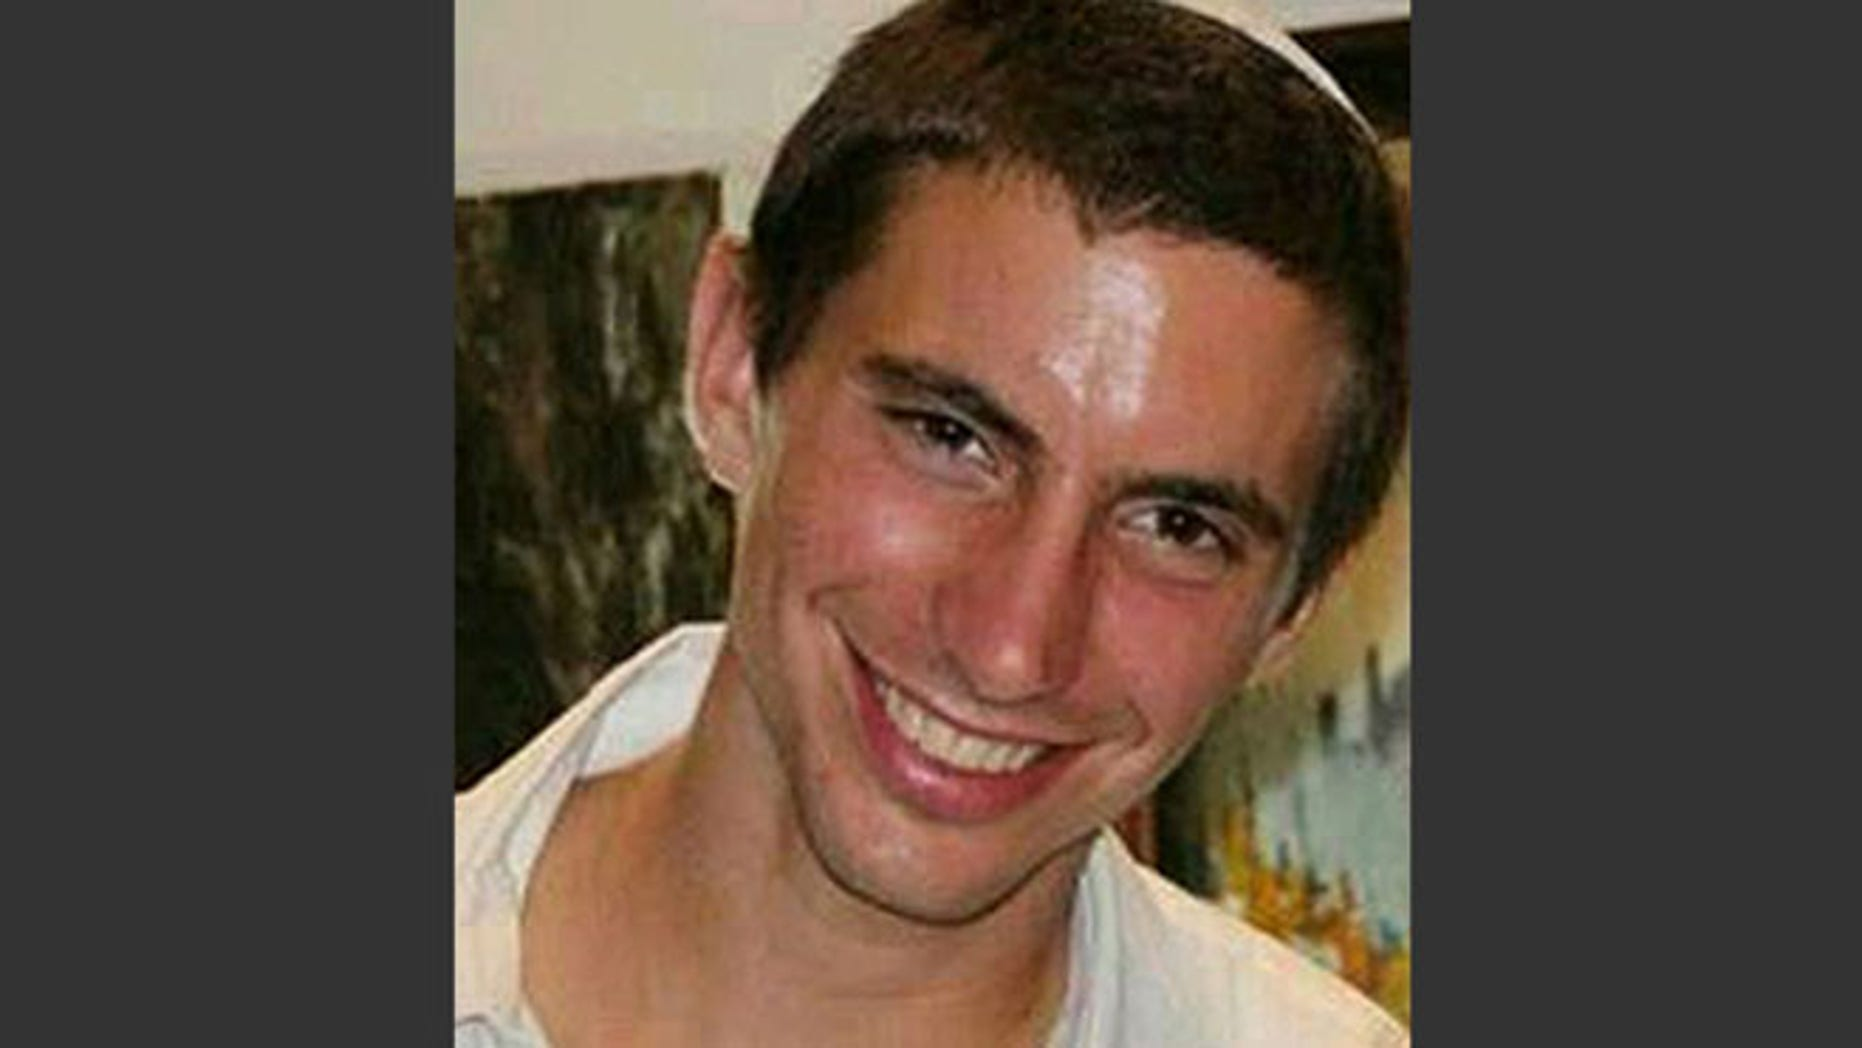 This undated photo shows Israeli Army 2nd. Lt. Hadar Goldin, 23, from Kfar Saba, central Israel.